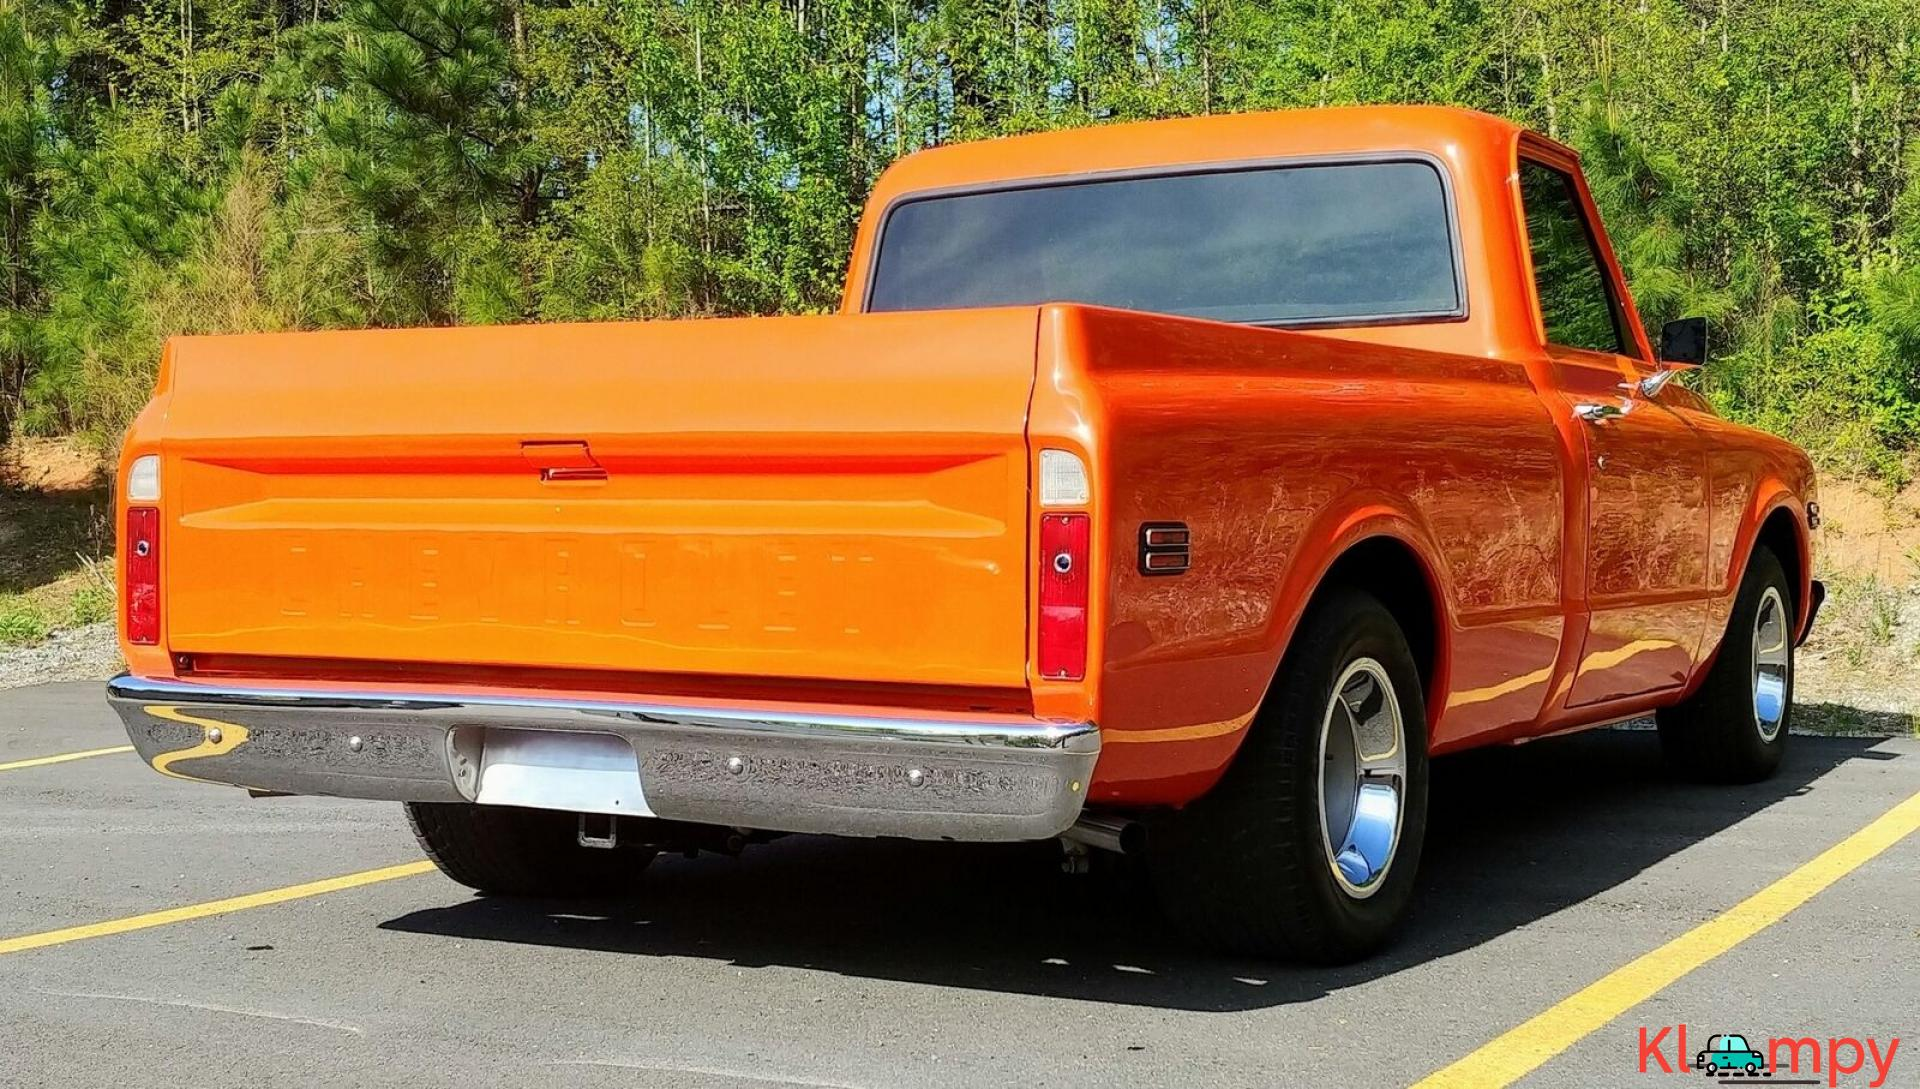 1968 Chevrolet Other Pickups C10 - 11/20